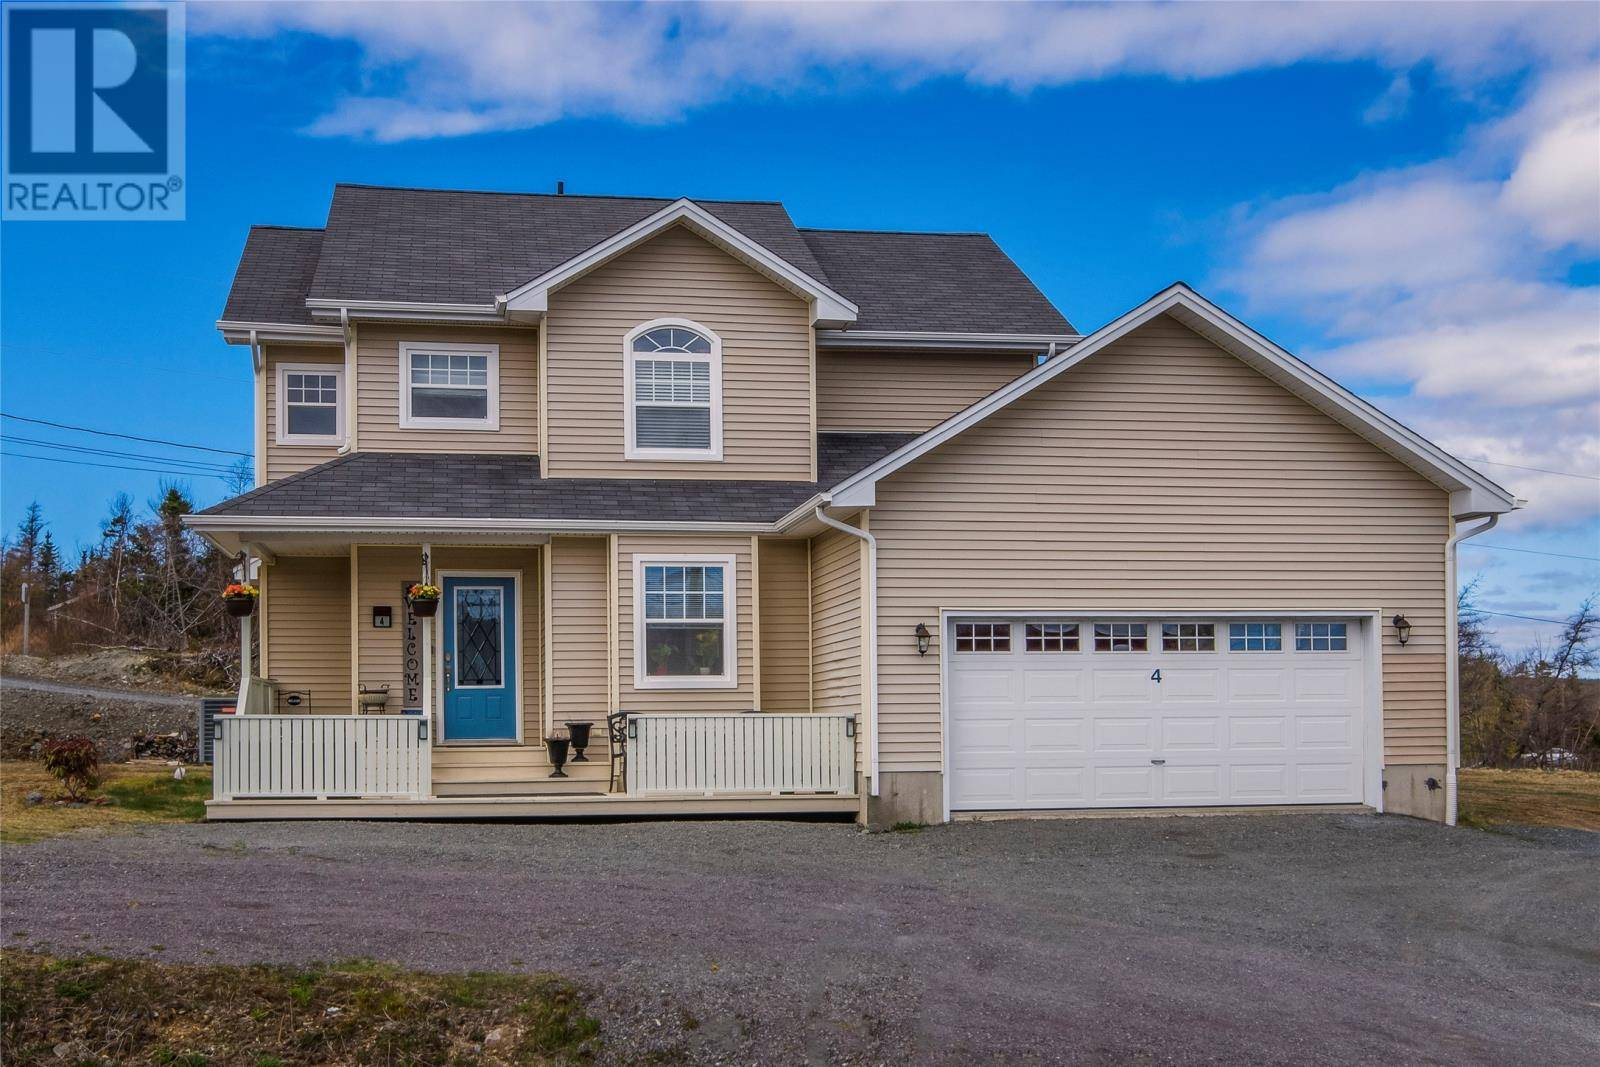 House for sale at 4 North Ridge Ave Blaketown Newfoundland - MLS: 1211451